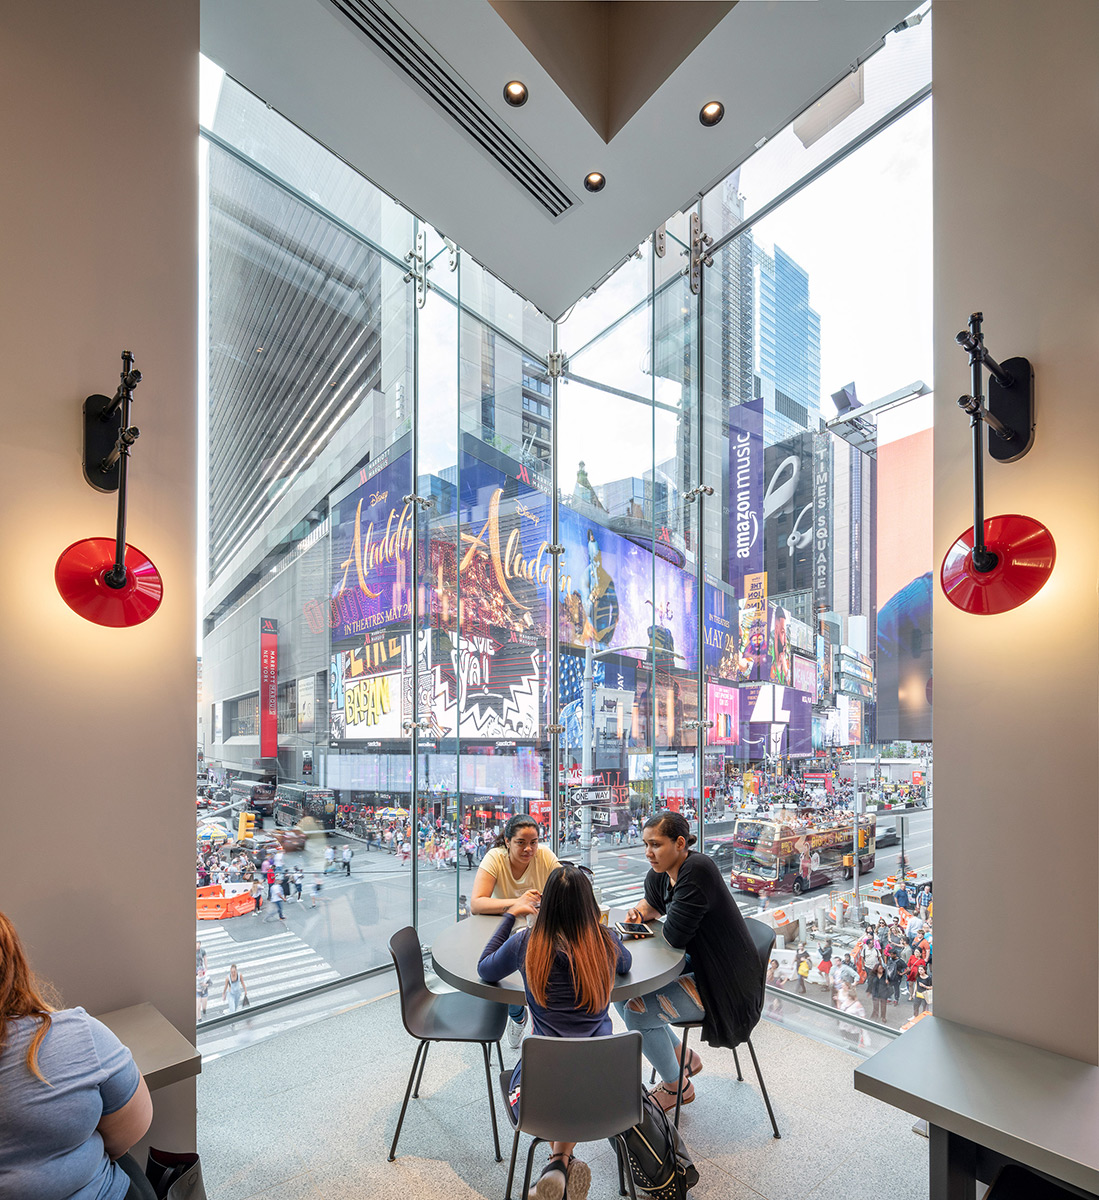 McDonalds-Time-Square-Landini-Associates-Andrew-Meredith-03